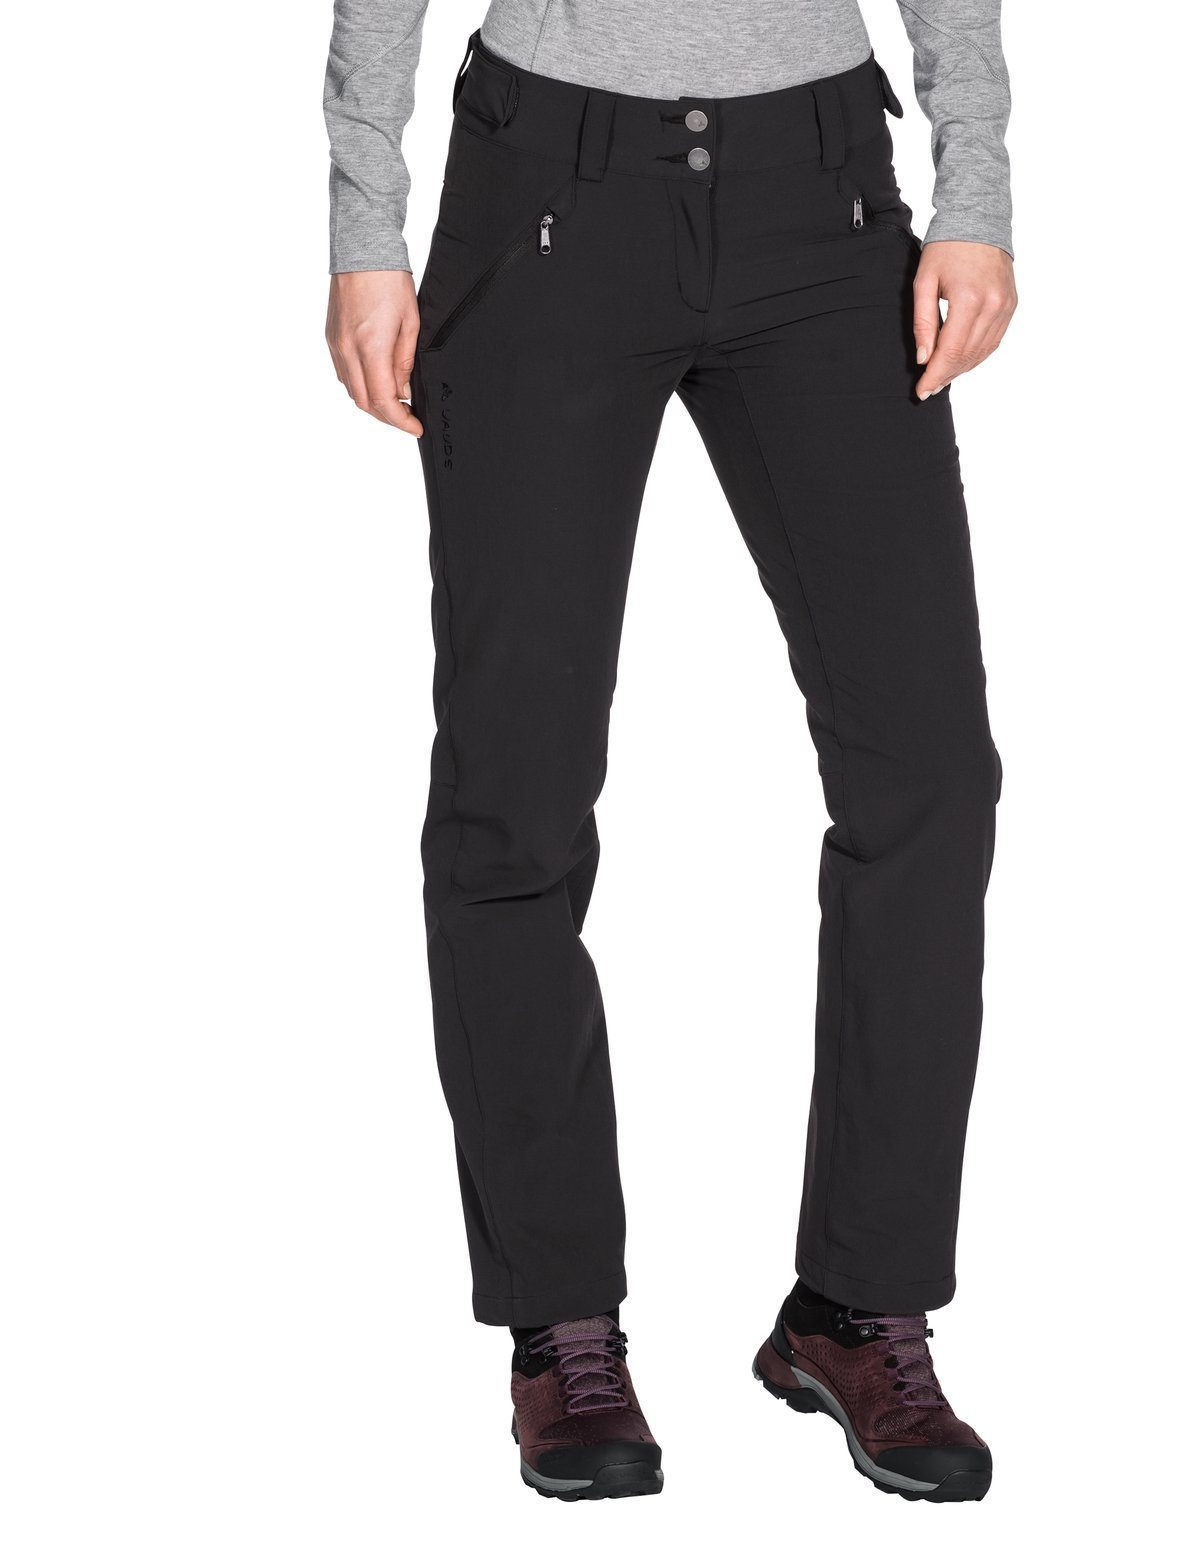 Vaude - W's Skomer Winter Pants - Wool Insulated - Weekendbee - sustainable sportswear